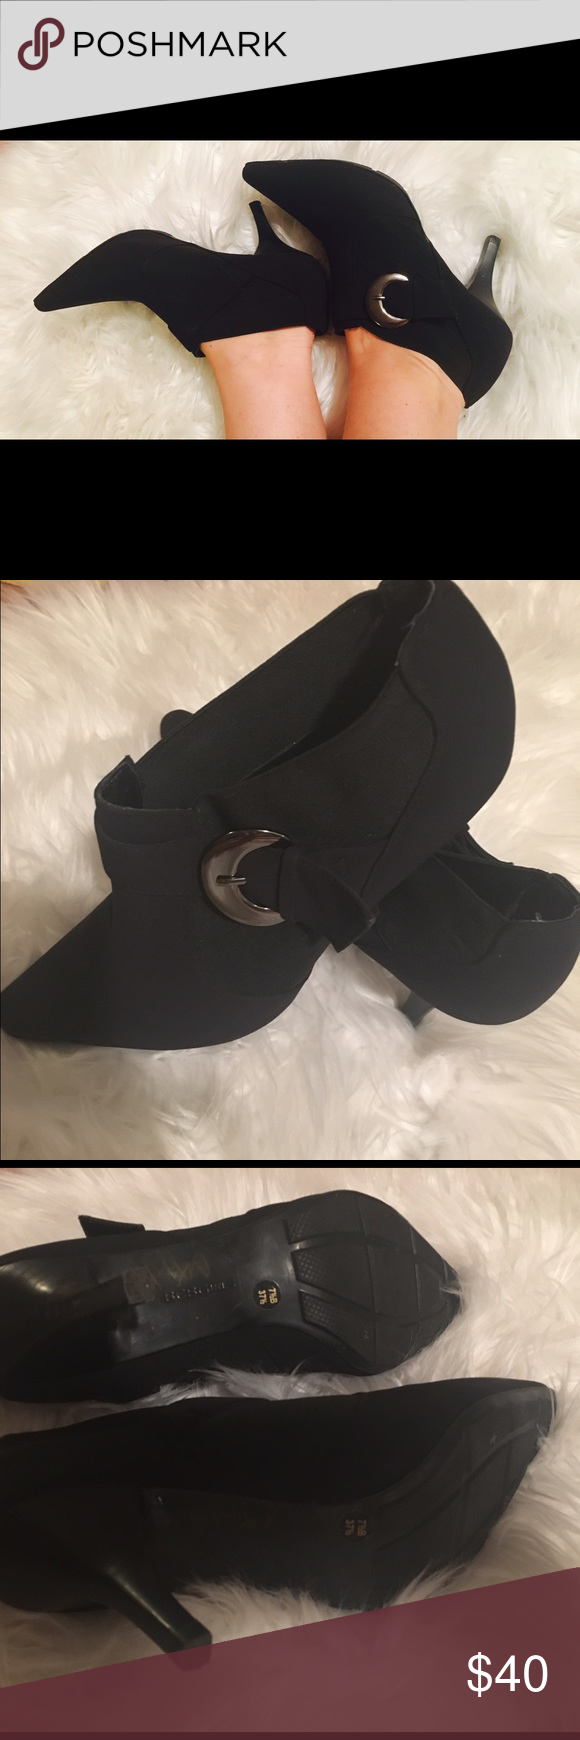 BCBG FALL HEELS 🍁🍂PERFECT Fall BCBG heels. Worn inside only. 7 1/2. Suede. Super comfy.🍂🍁 BCBGirls Shoes Ankle Boots & Booties